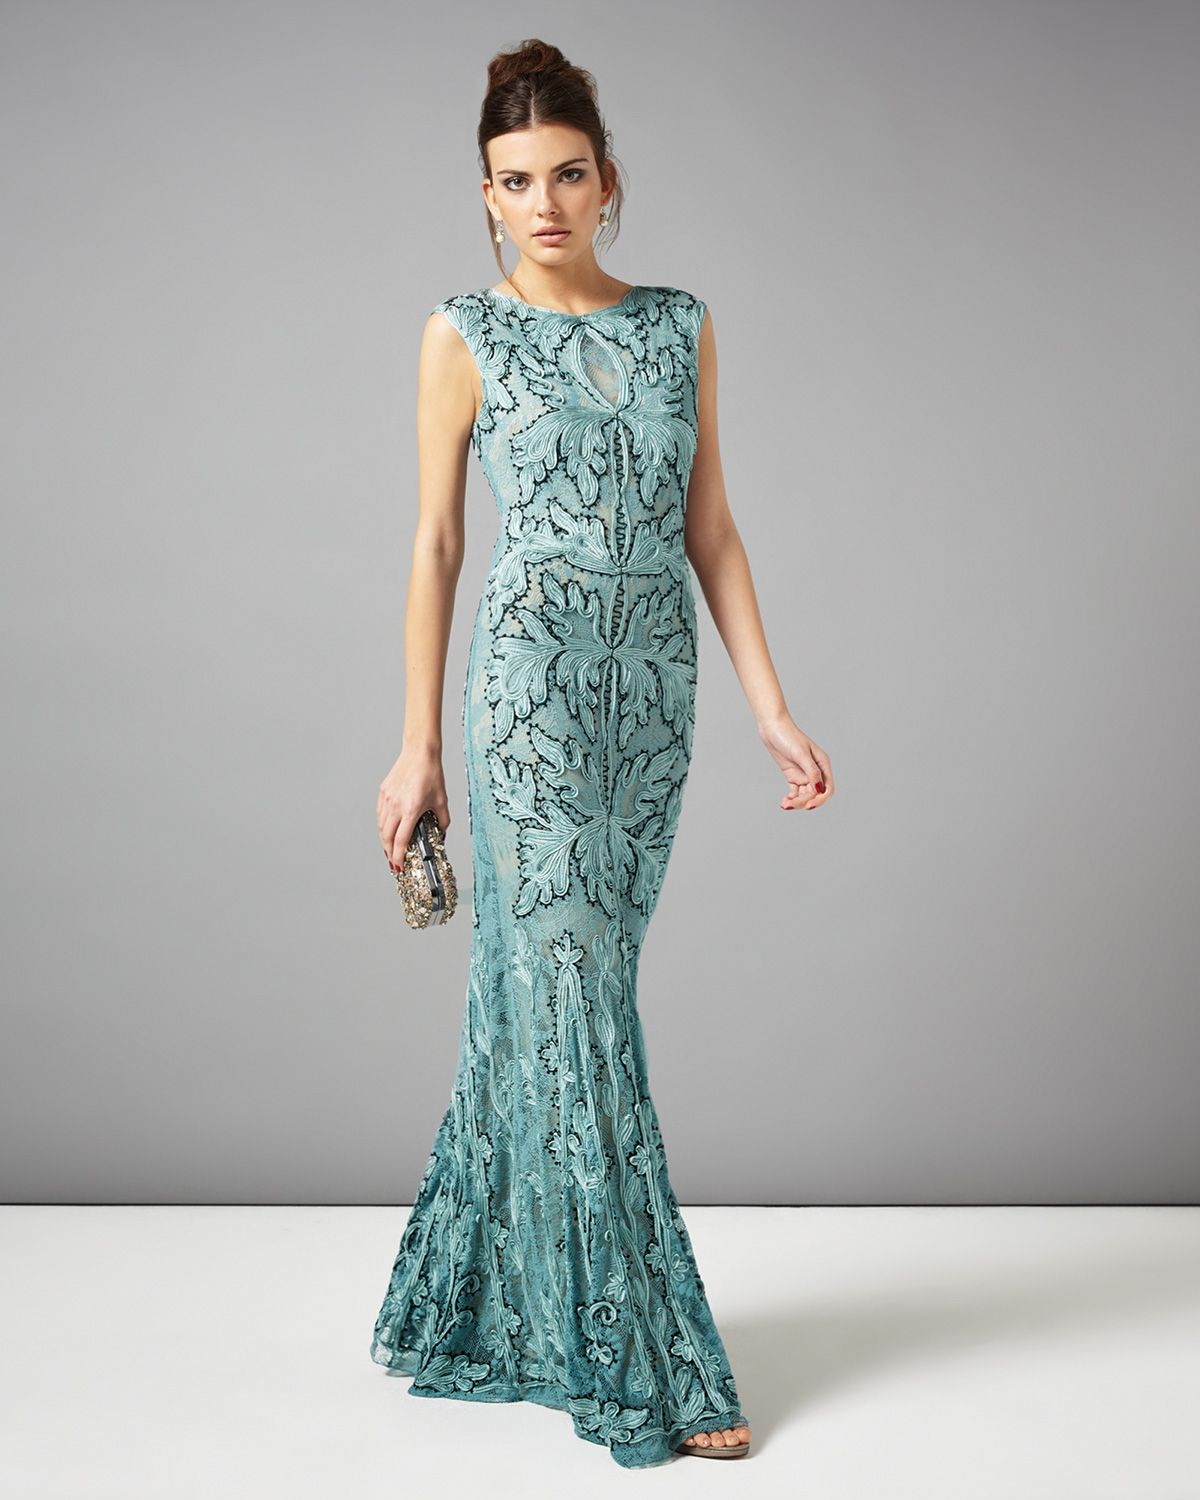 Dresses | Blue Paige Tapework Full Length Dress | Phase Eight ...